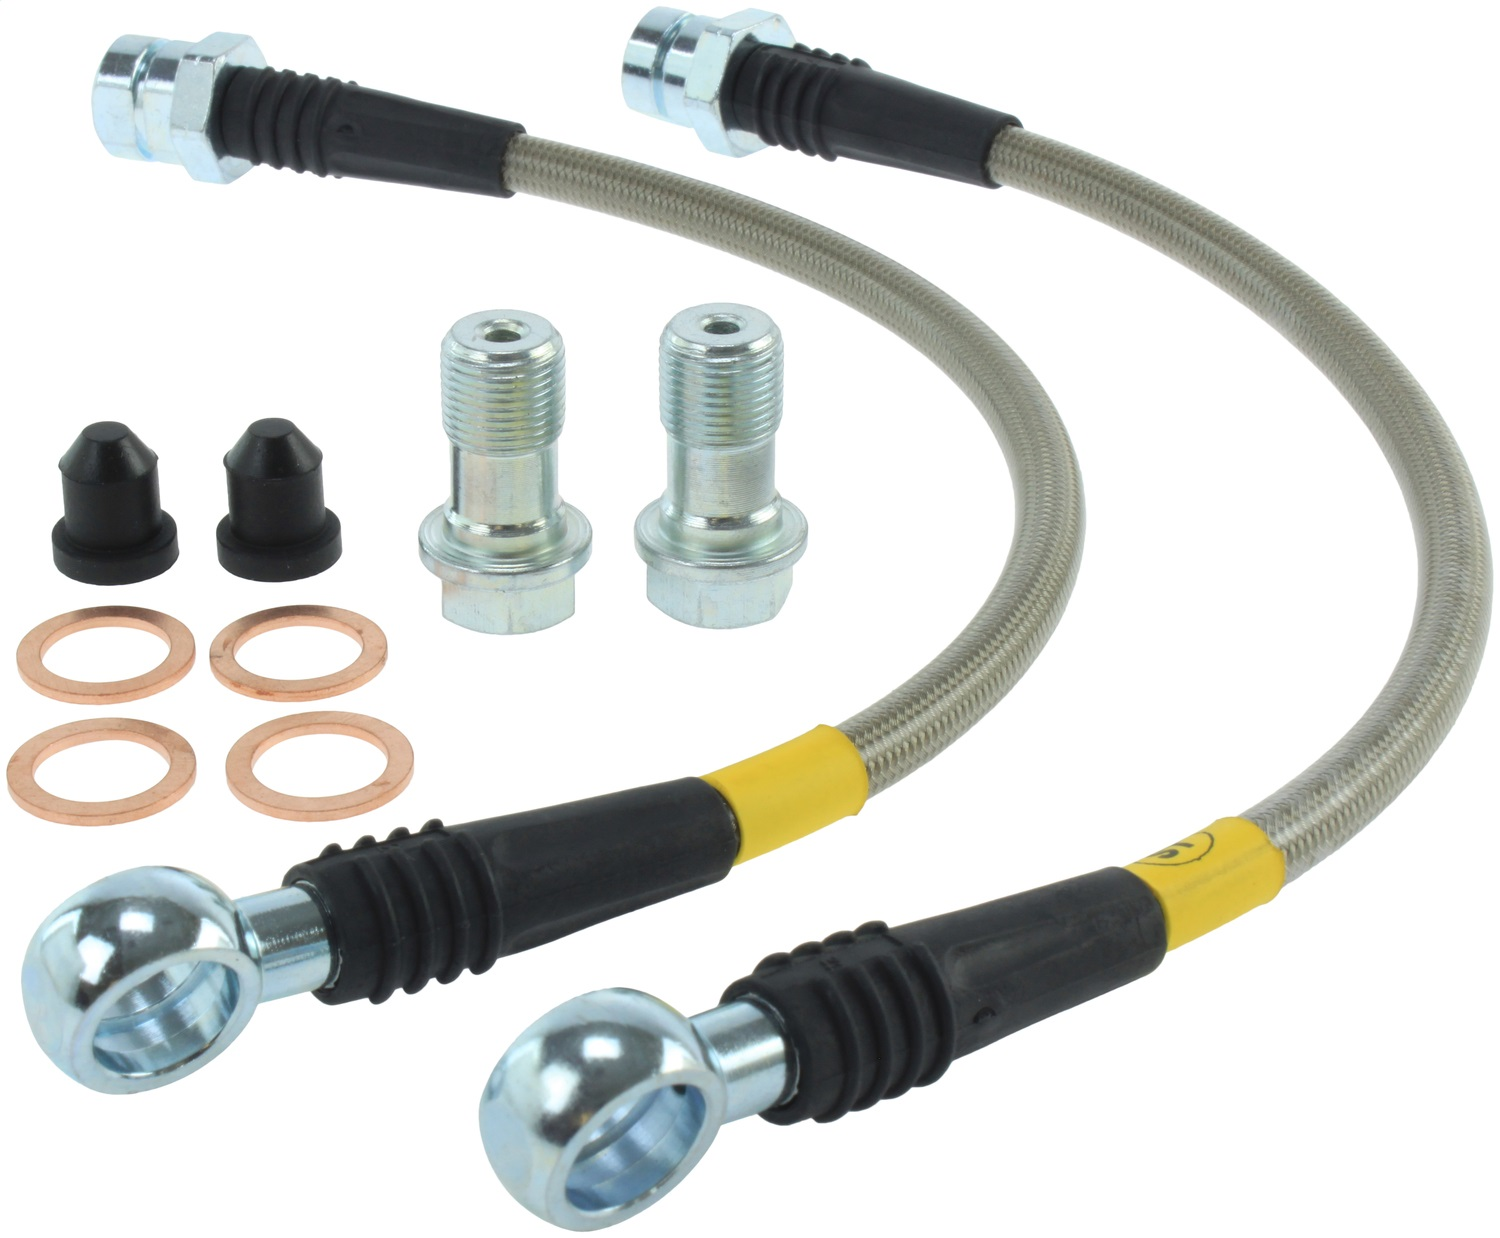 StopTech 950.33522 Stainless Steel Braided Brake Hose Kit Fits 15-17 GTI